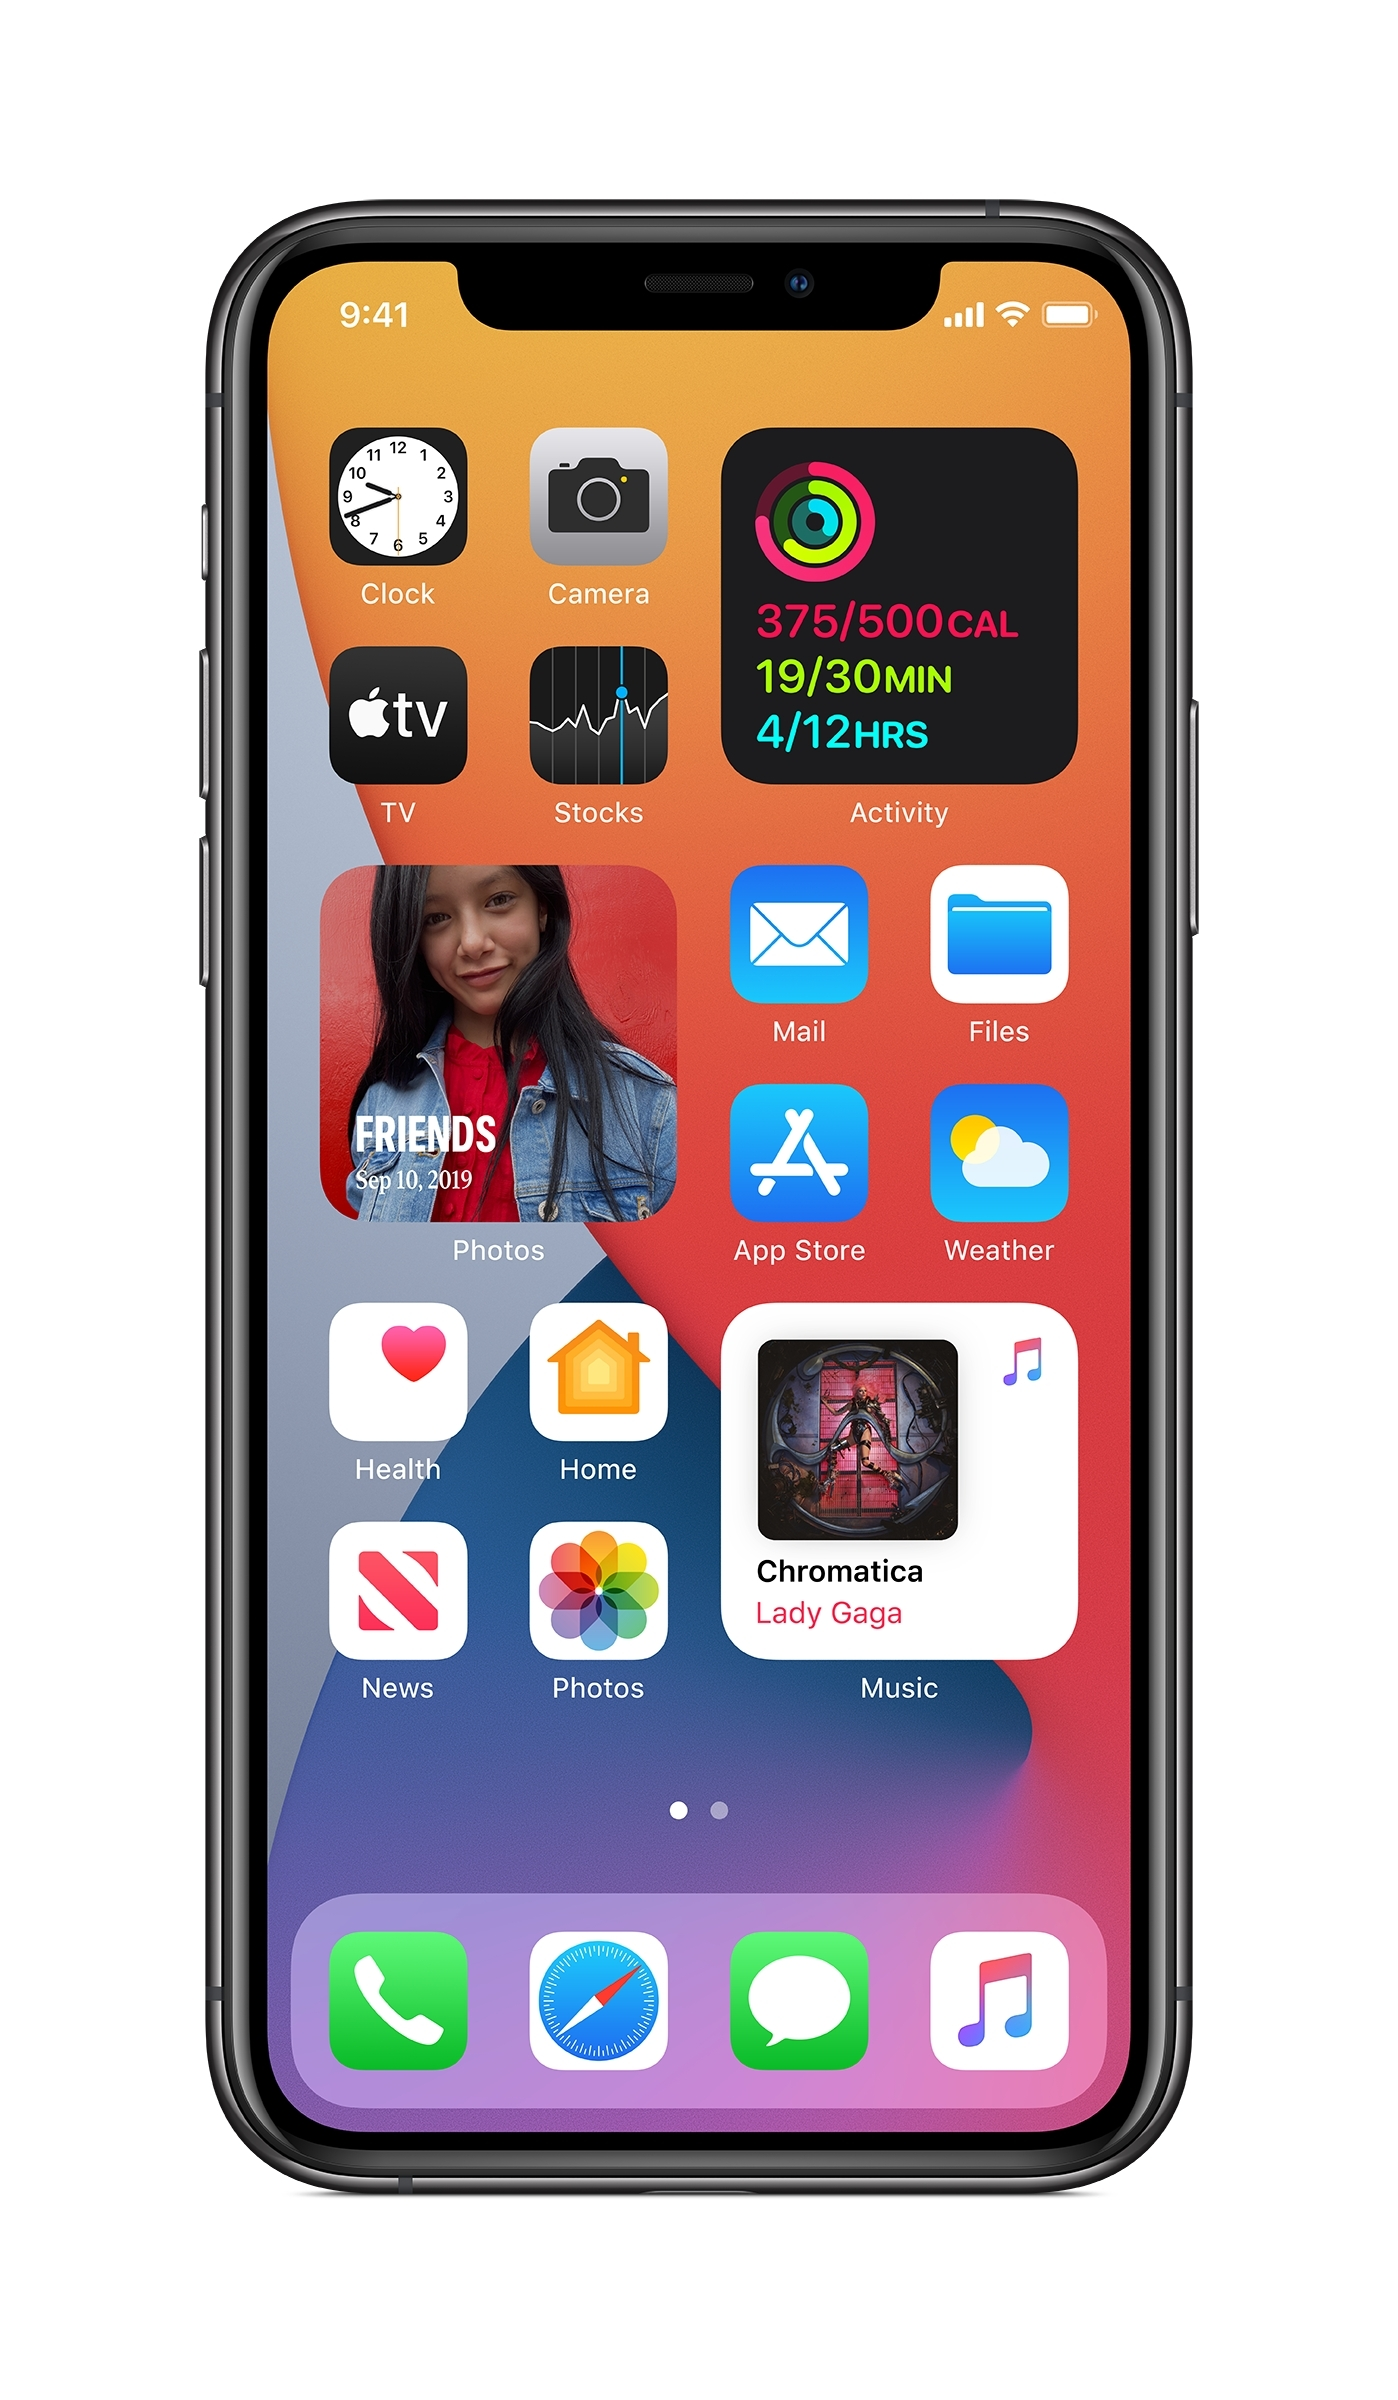 Apple previews iOS 14, introducing the biggest update ever to Home Screen pages, a new way to tap into the App Store with App Clips, powerful updates to Messages, and more.